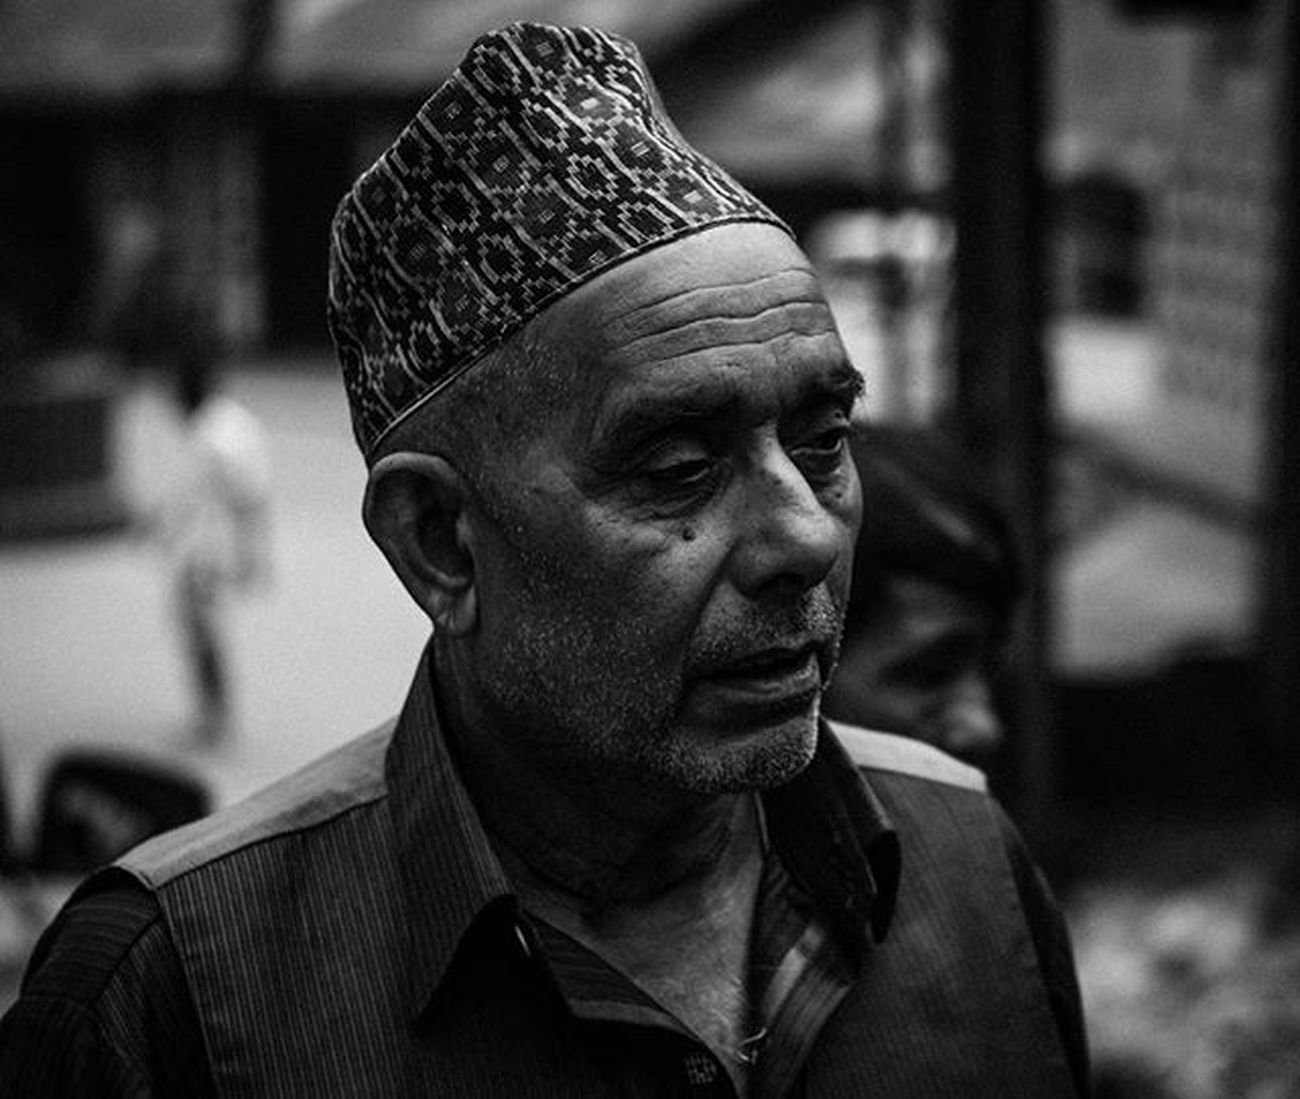 Portrait of a local man at morning market, Darjeeling . . . Streetportrait Portrait Jj_streetphotography Moodygrams Highcontrast Foto_blackwhite Amateurs_bnw Bnw_planet Bnw_rose Bnw Travel Travelingram Natgeotravel Lonelyplanetindia Ig_india Ig_bengals OnlyinIndia IndiaLove Natgeo Betterphotography Onlyinbengal Indiaphotoproject _oye _soi Indiastreet indiaig